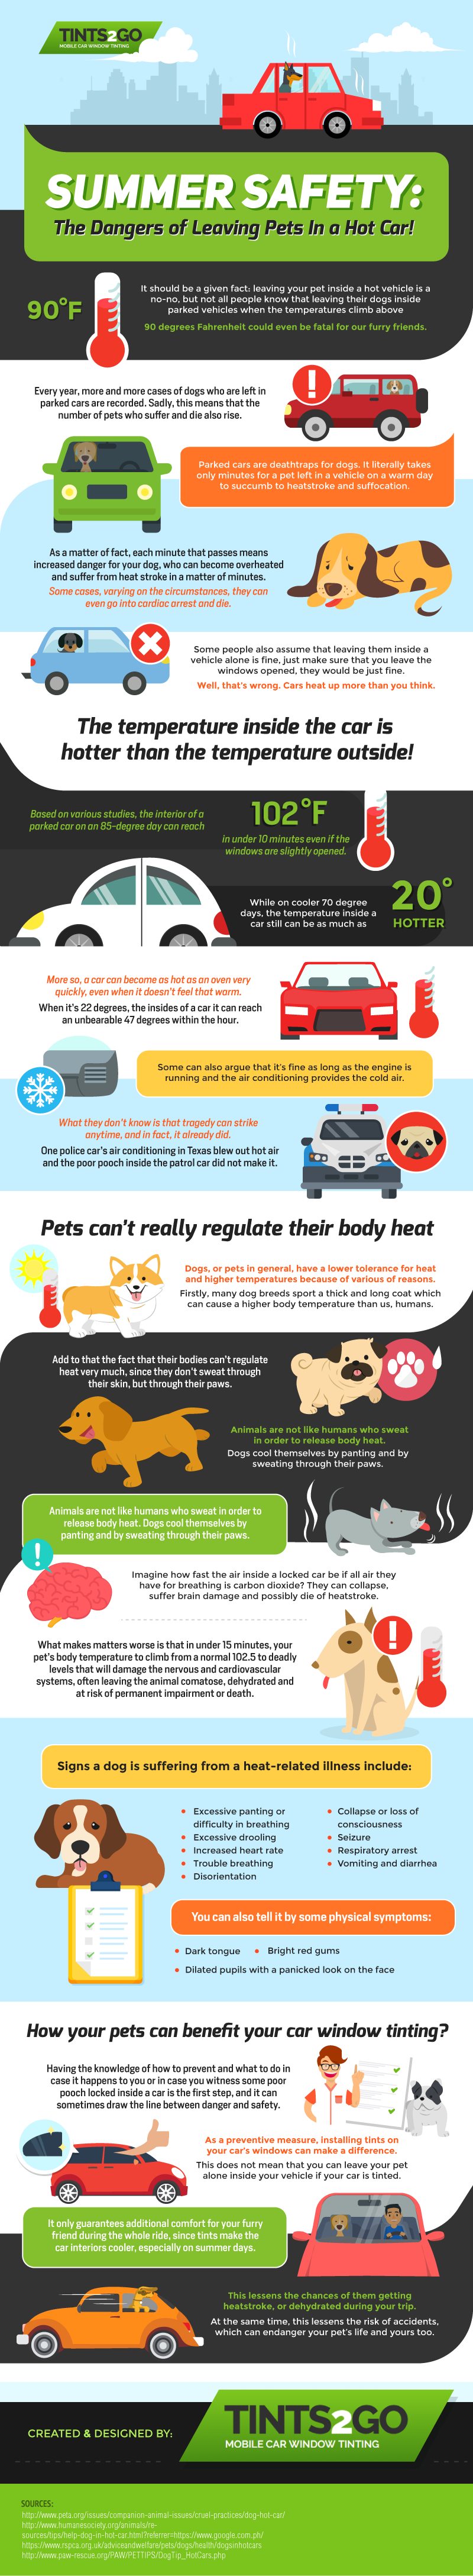 Summer Safety The Dangers of Leaving Pets in a Hot Car